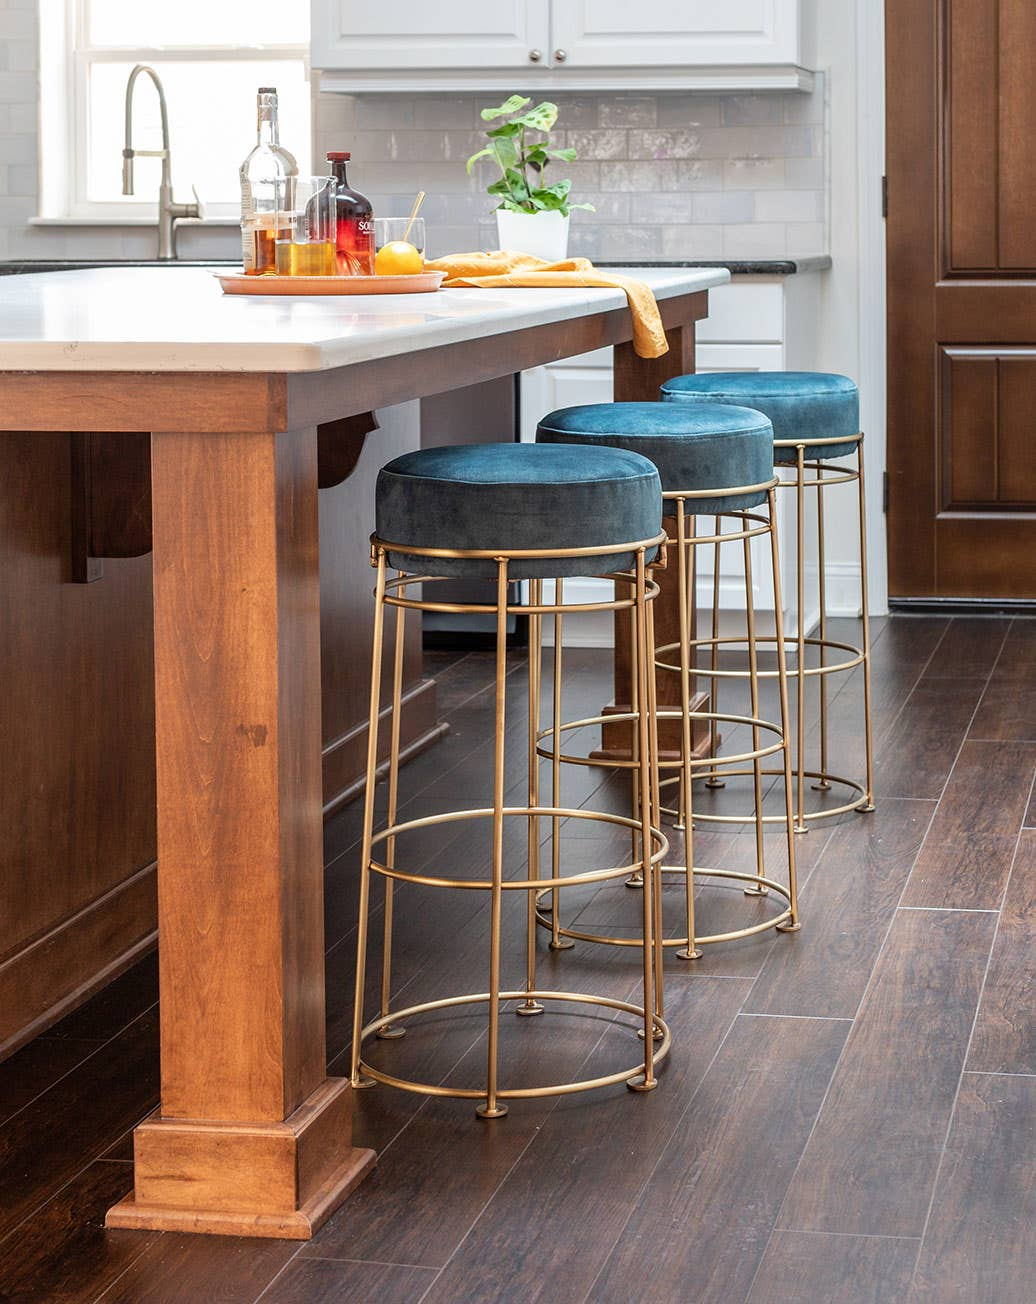 Three brass Rosa Bar Stools upholstered in blue velvet at a kitchen island